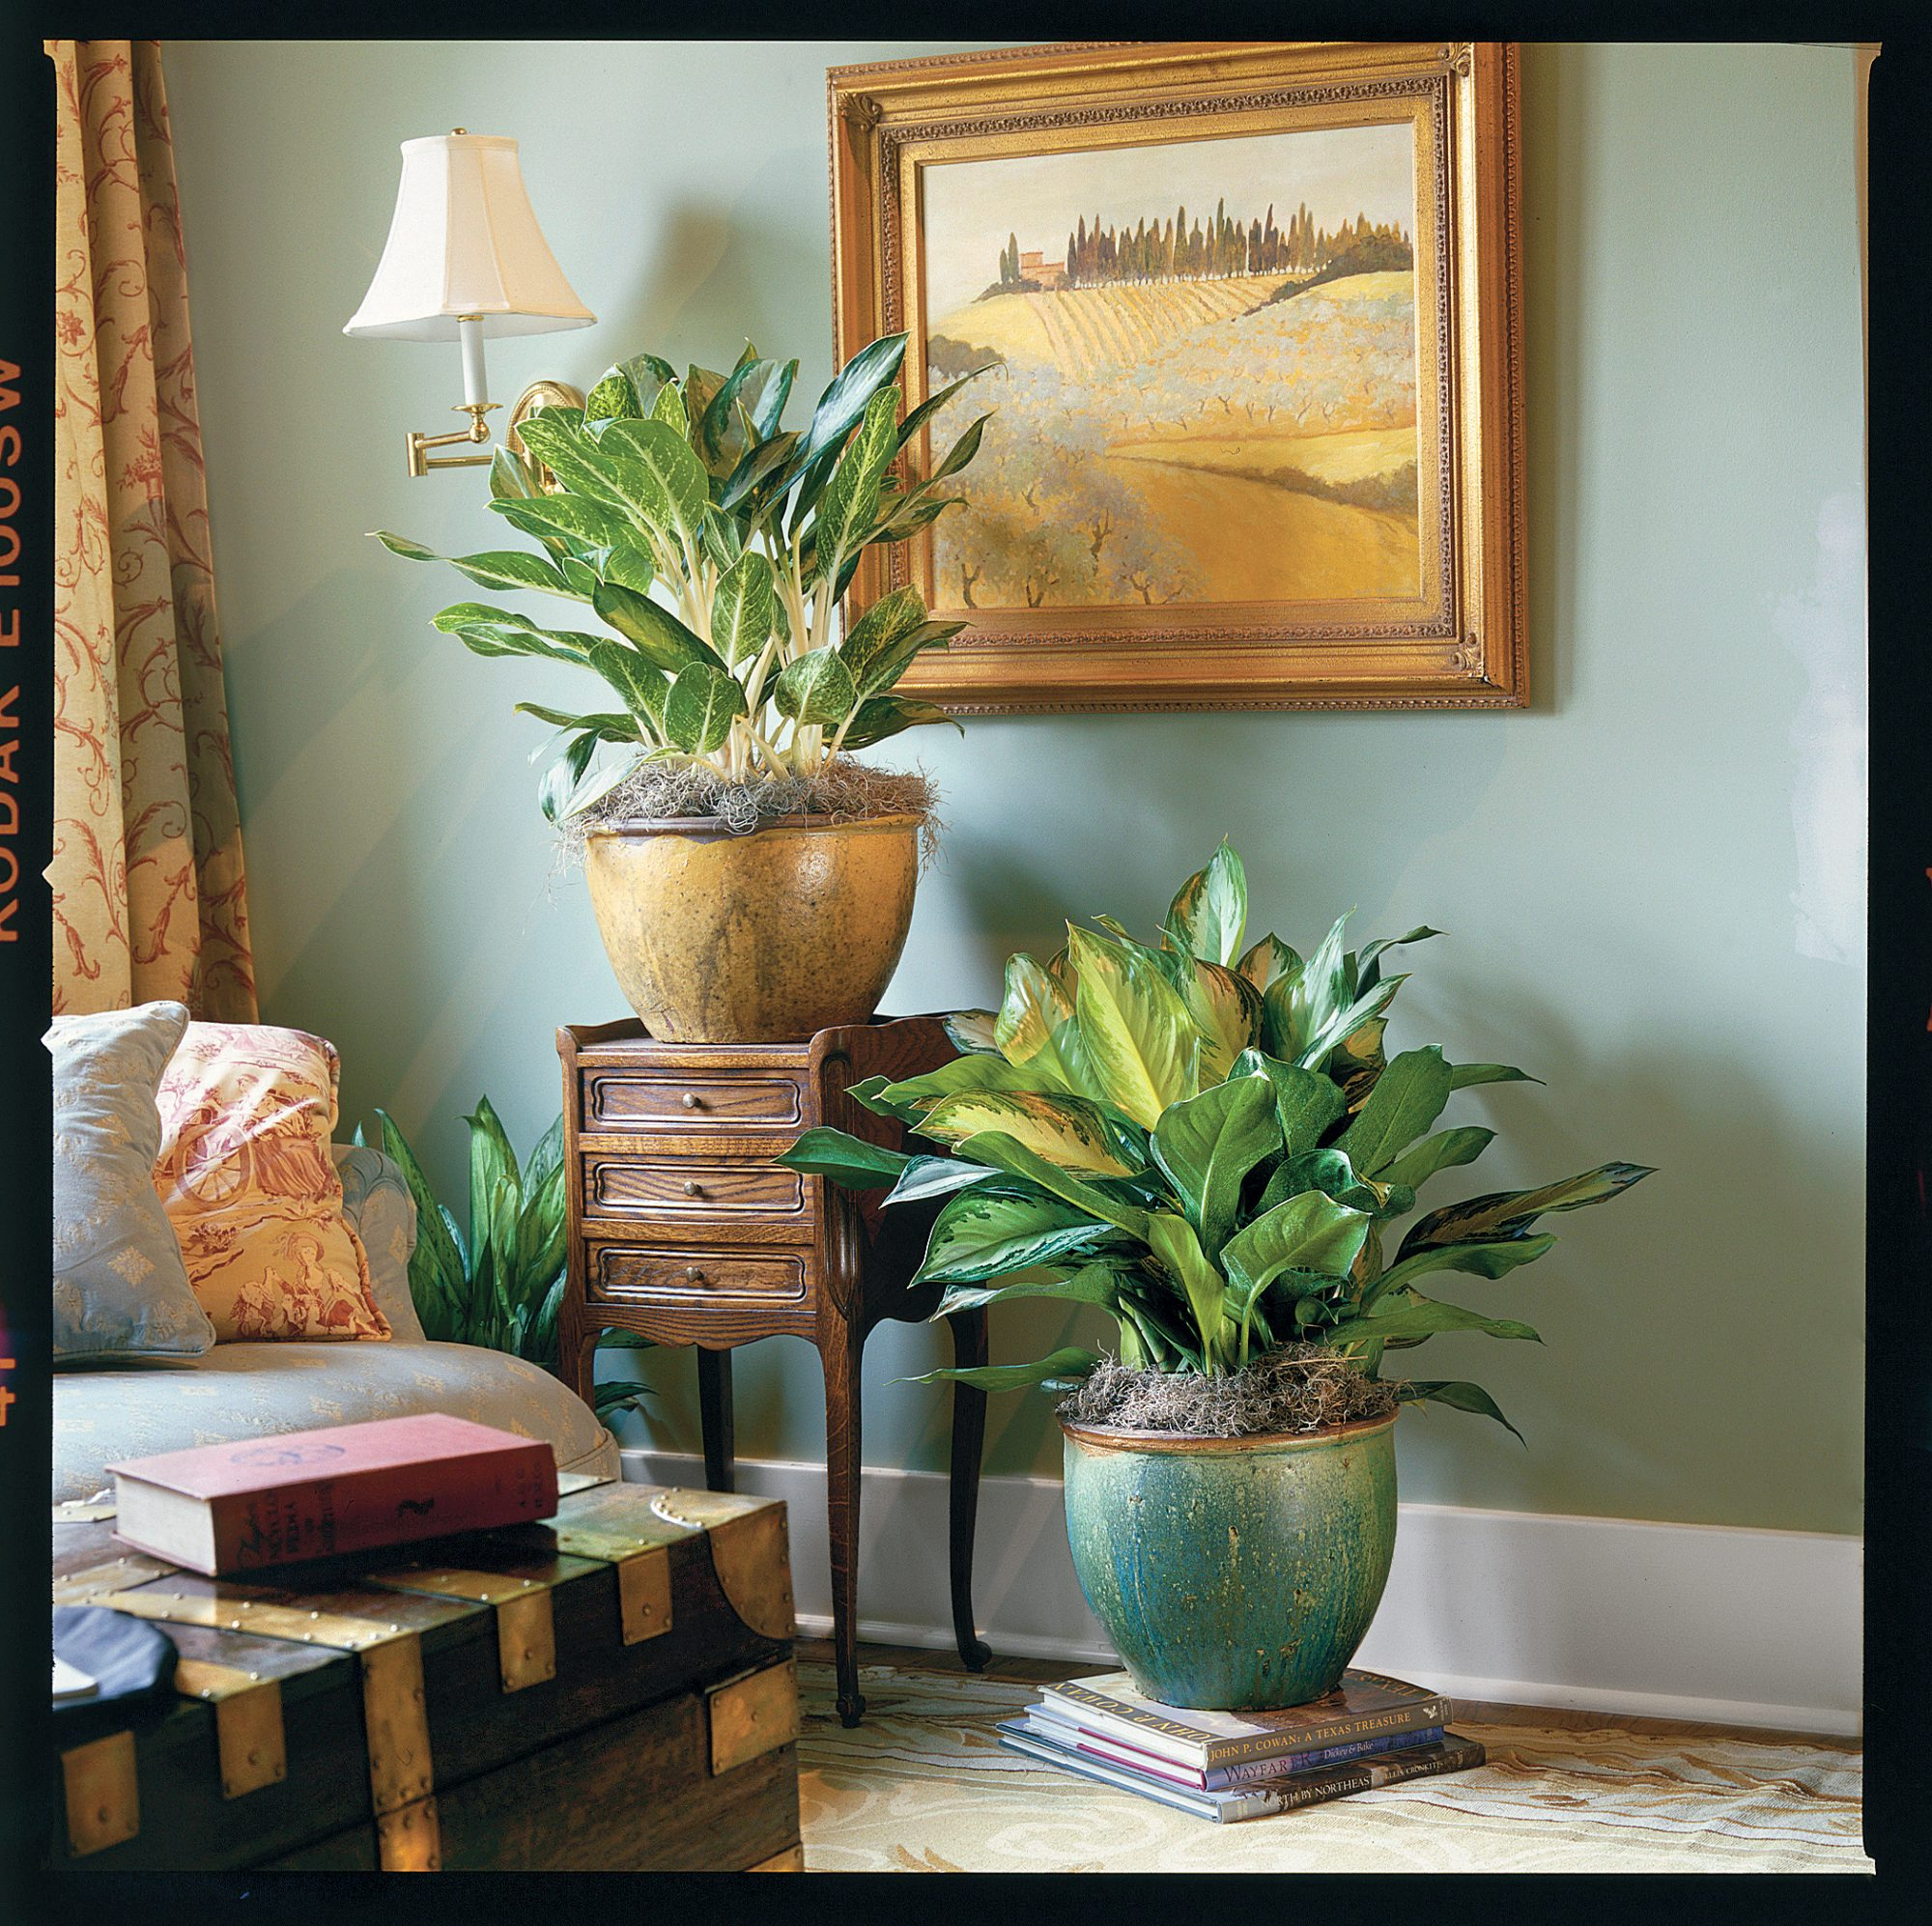 (new image) The Easiest Houseplant